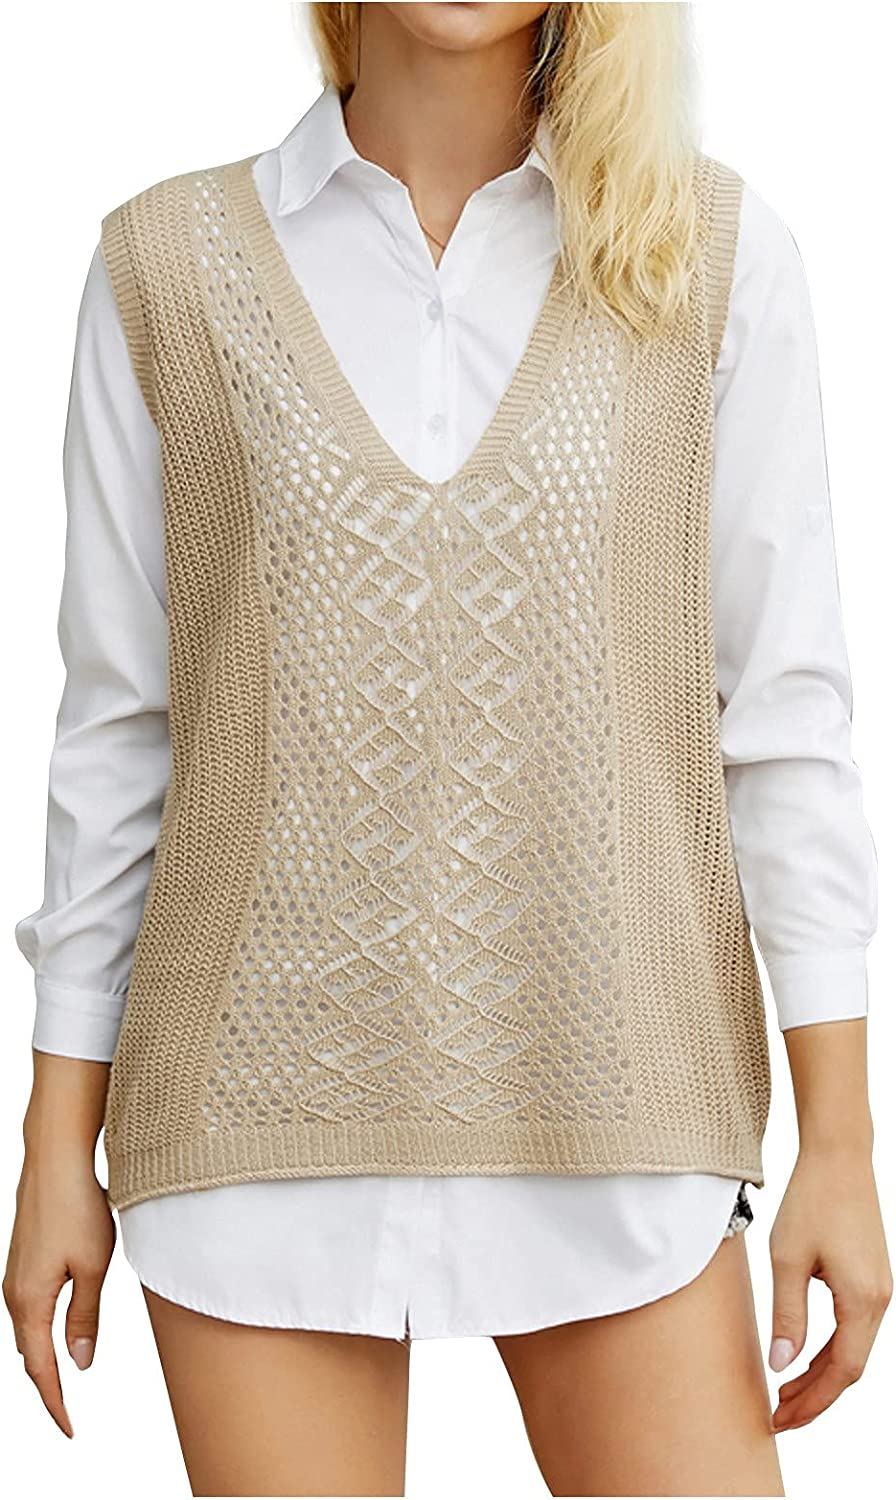 Women's Knitted Sweater Vest V Neck Sleeveless Loose Casual Sweaters Hollow Solid Color Waistcoat Pullover Knitwear Top